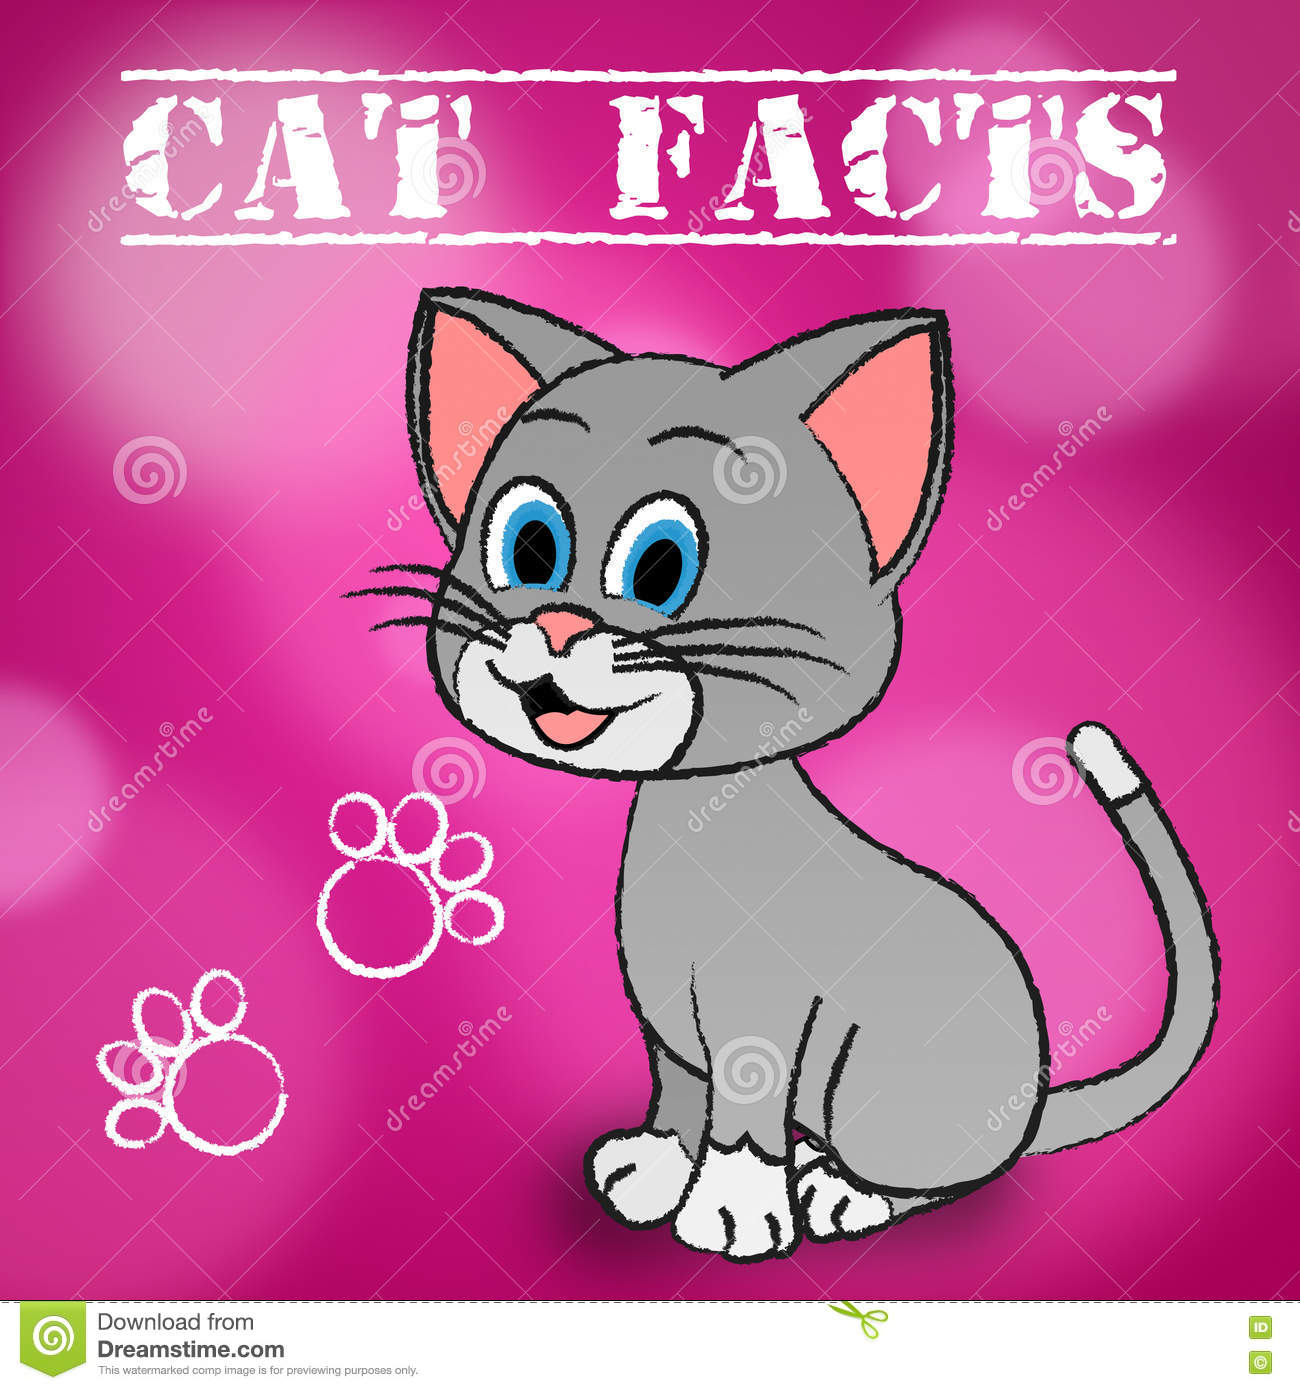 Cat Facts Indicates Details Kitty ed animali domestici